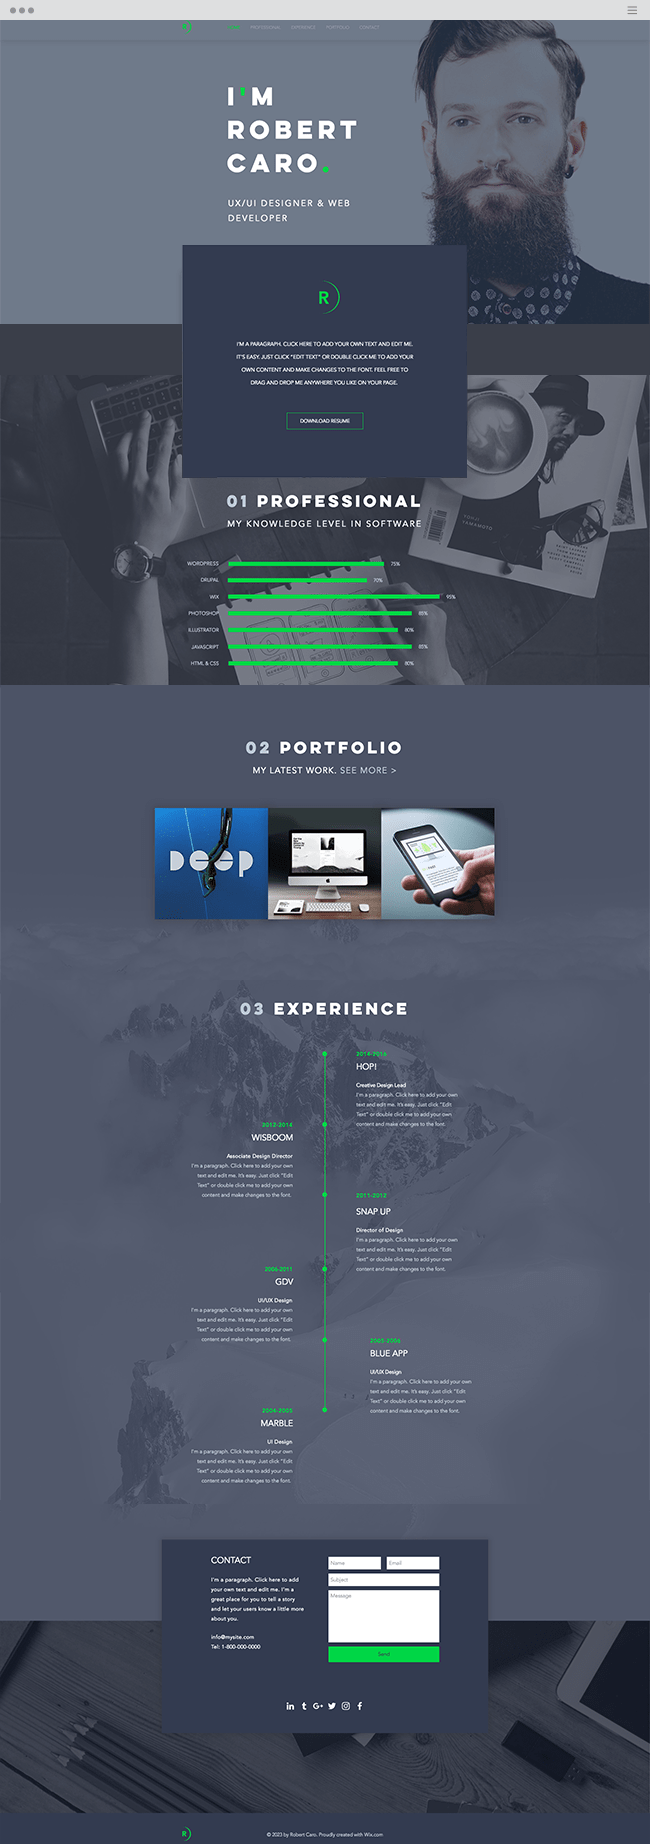 New Website Templates You Have To See